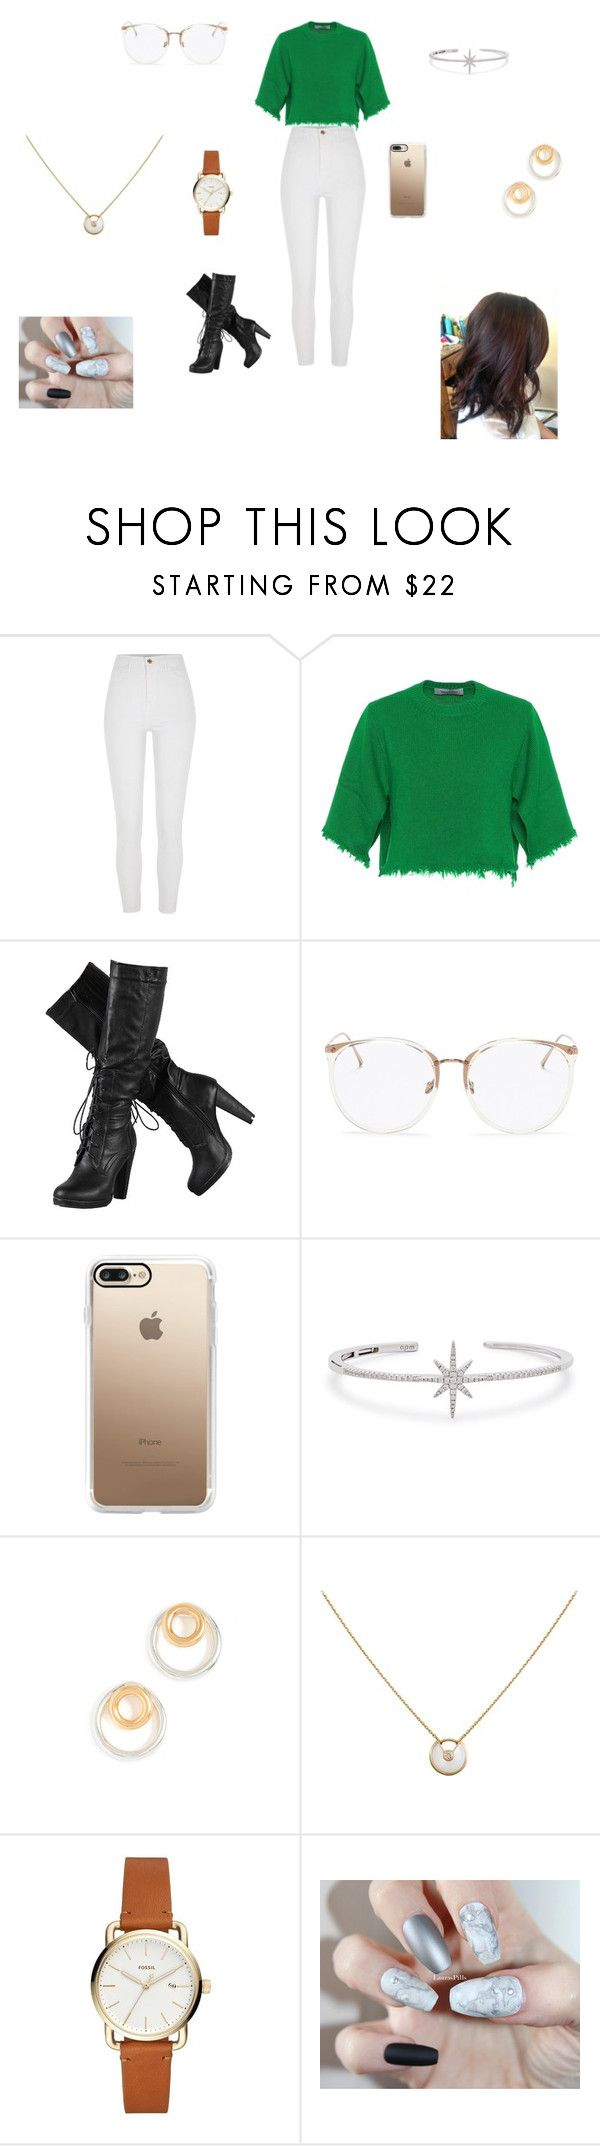 """Marvel - Bruce Banner's Daughter (The Hulk)"" by messa2021 ❤ liked on Polyvore featuring River Island, Valentino, Linda Farrow, Casetify, APM Monaco, Madewell and Cartier"